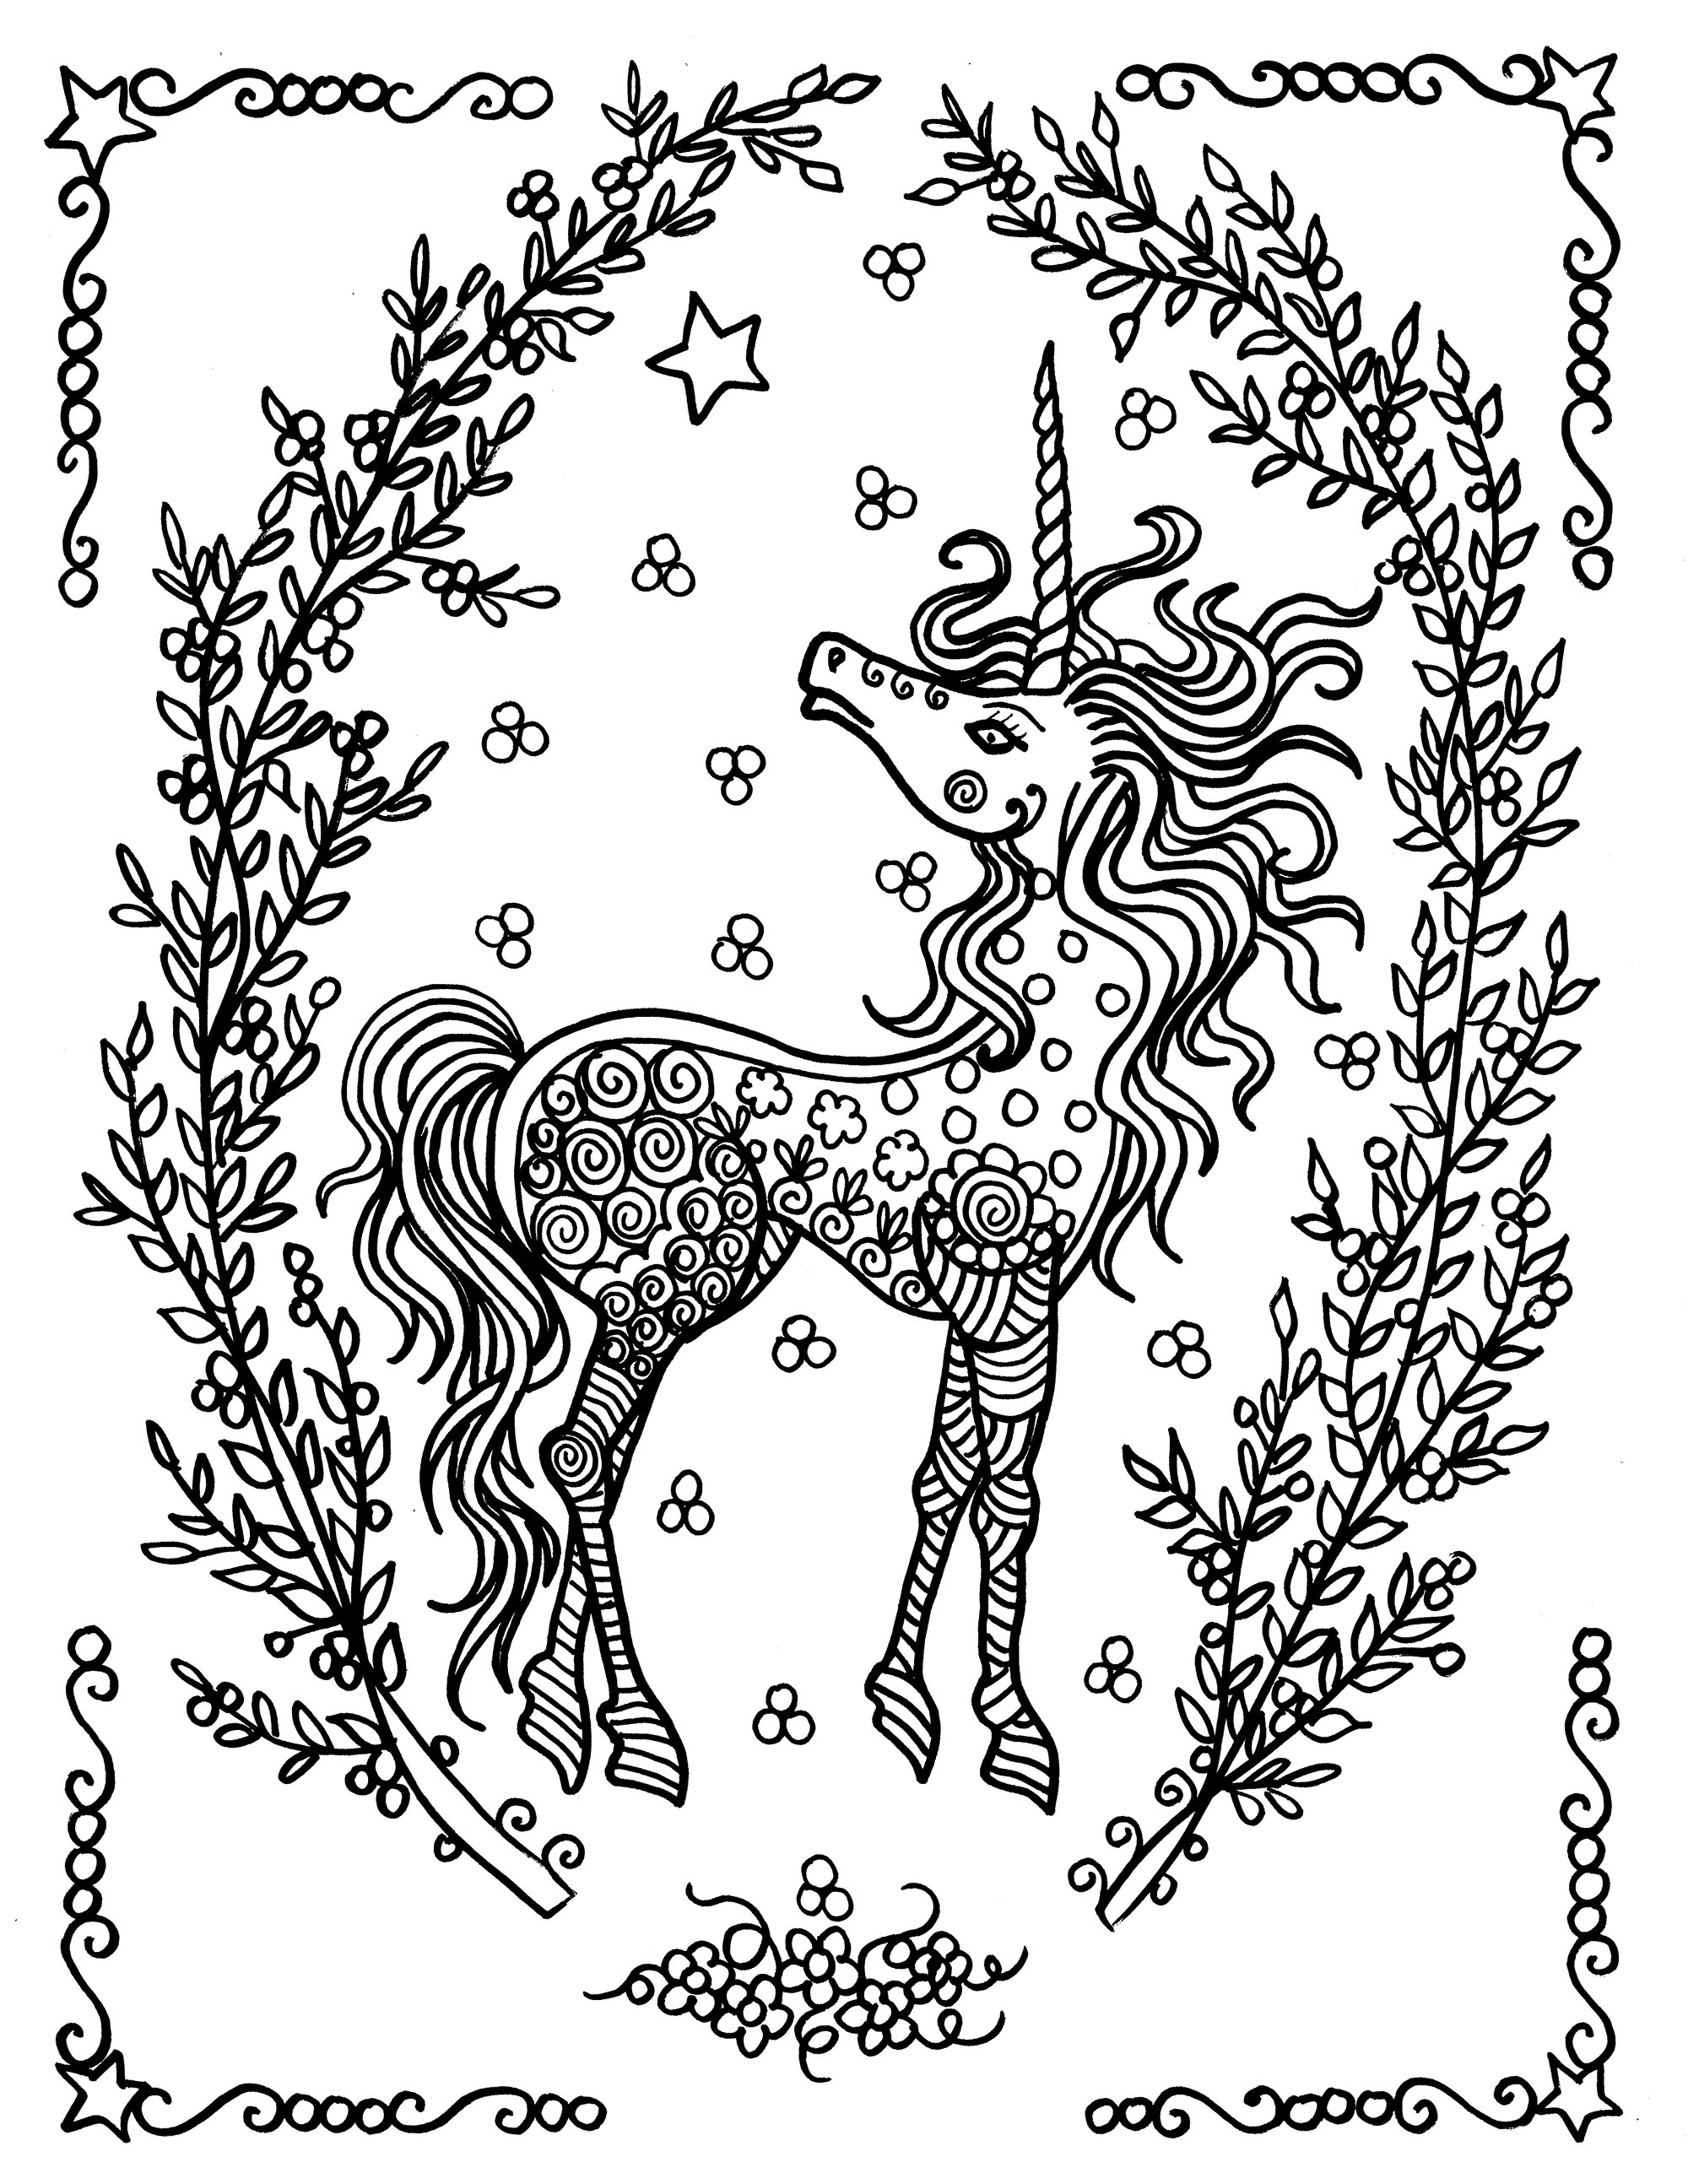 Myths amp legends Coloring pages